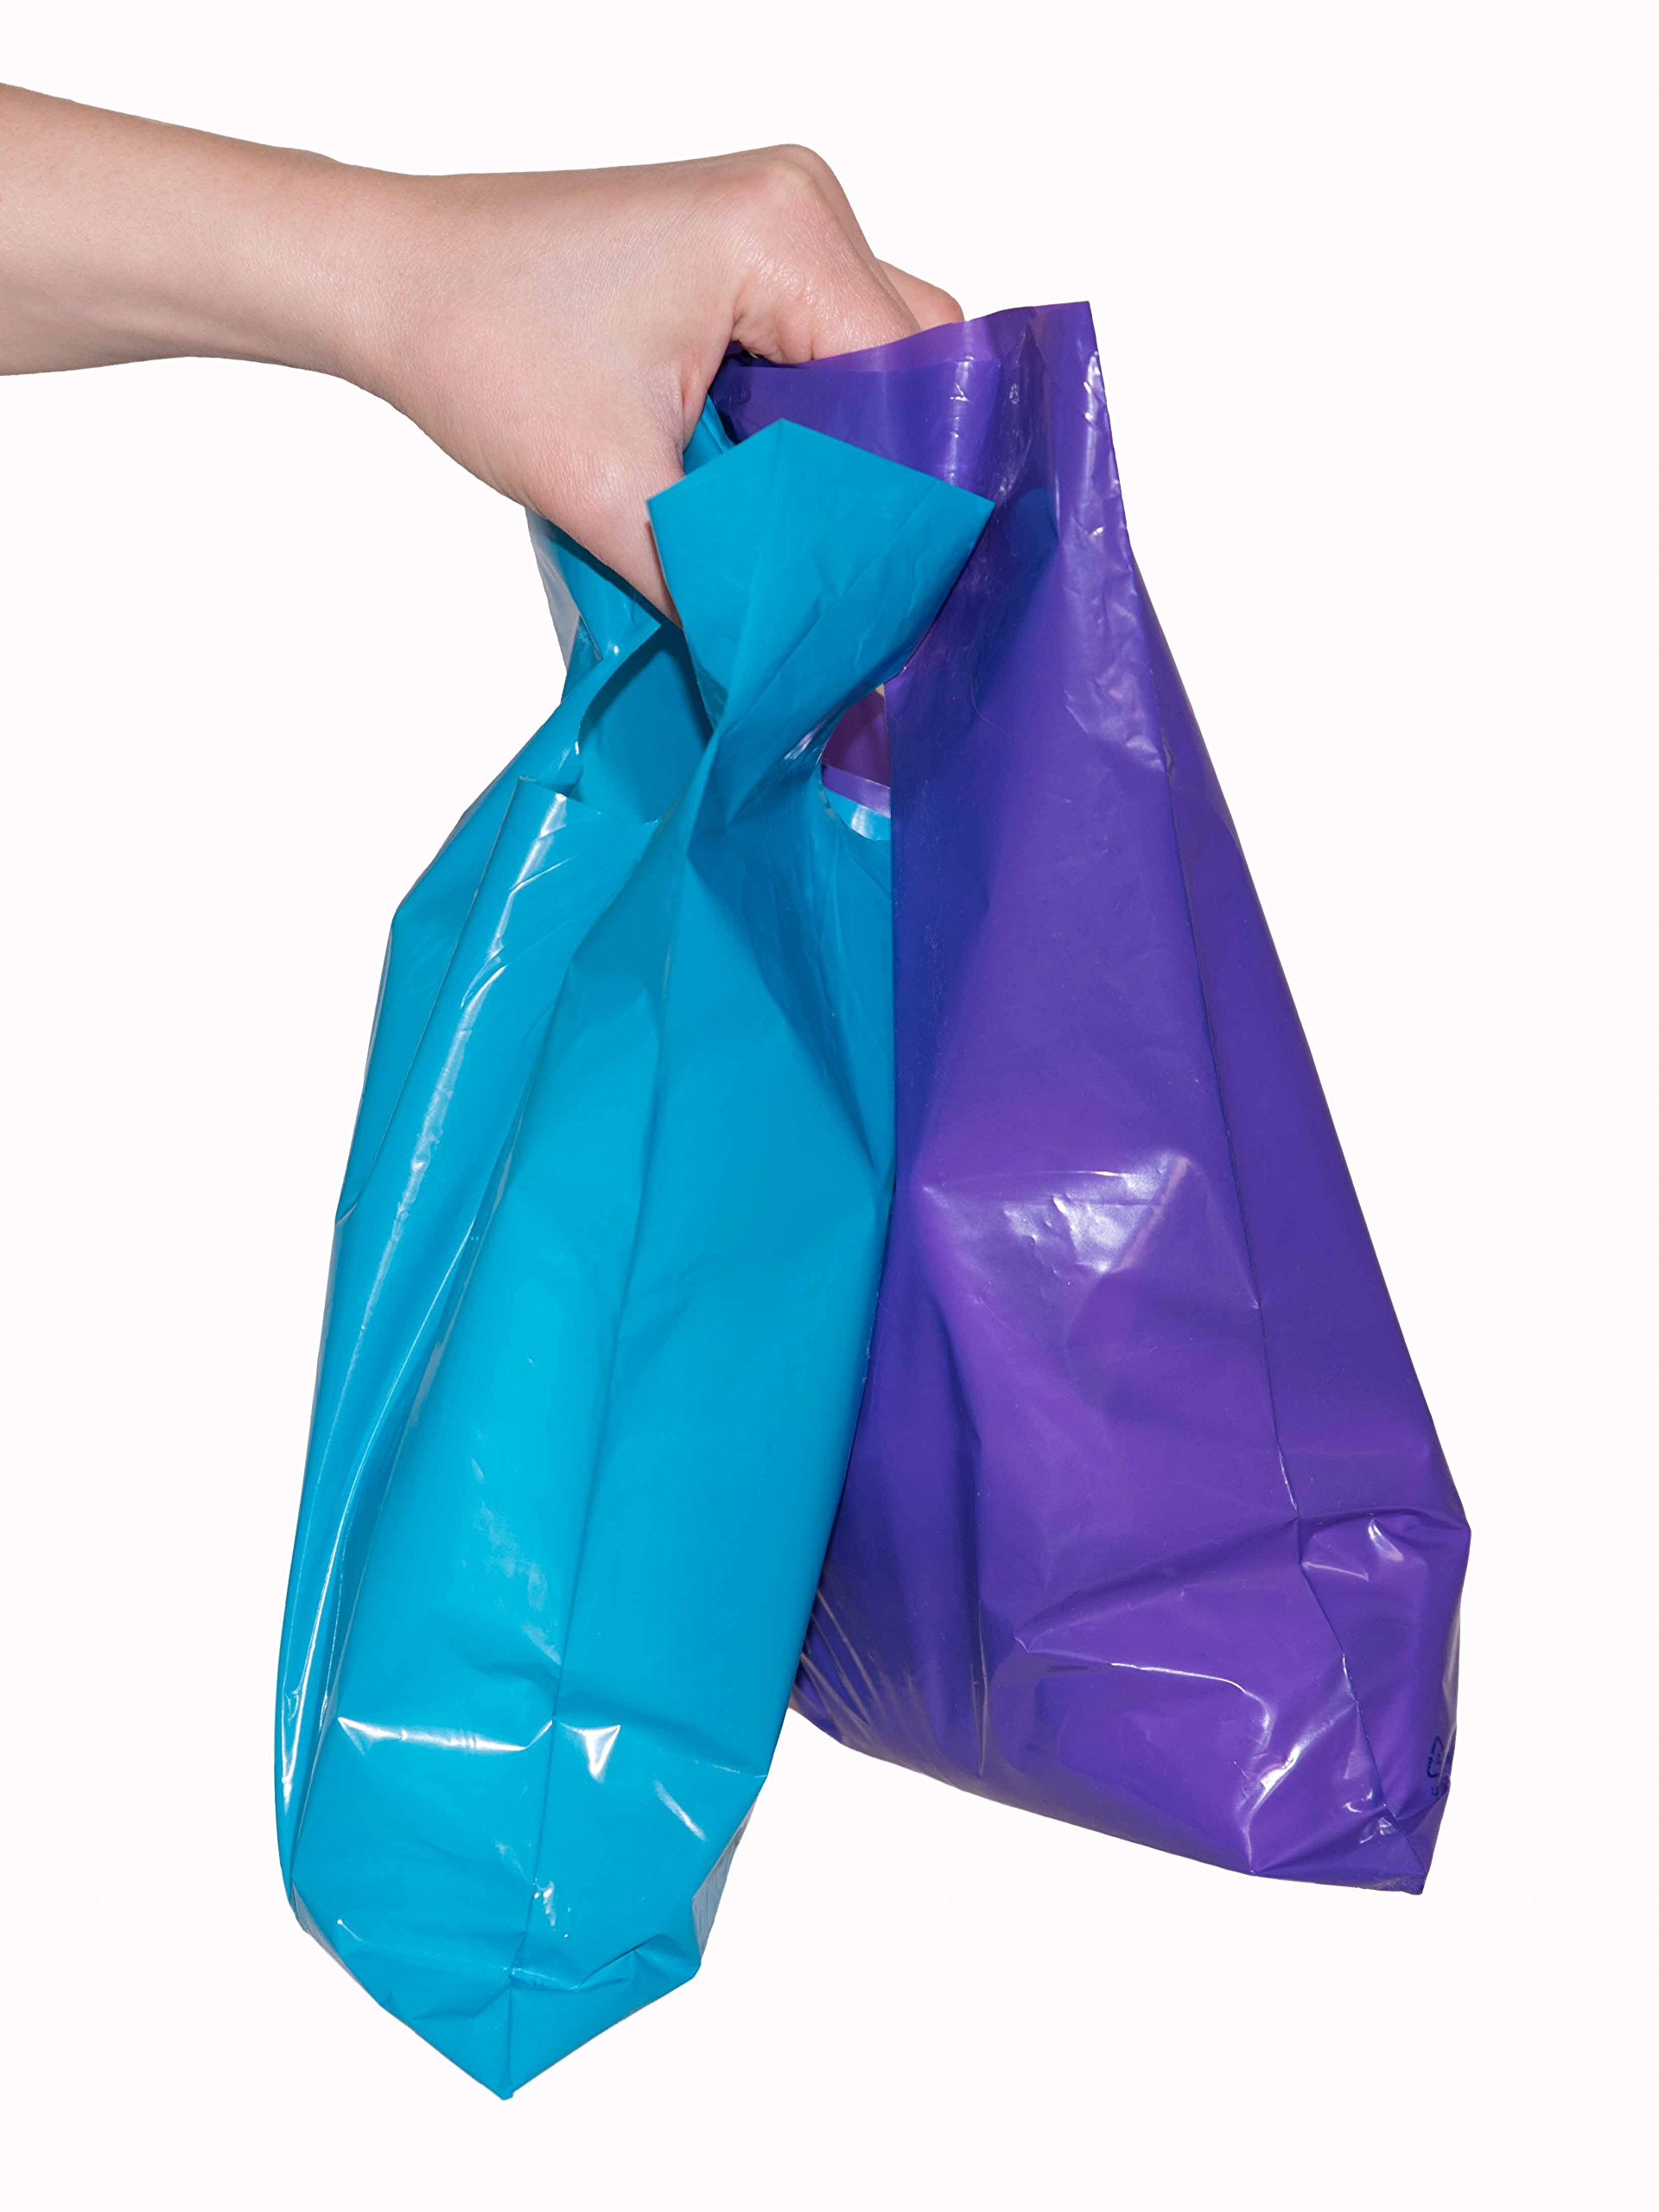 200 small glossy purple & teal plastic merchandise bags w/die cut handles 9x12'', retail shopping bags perfect for small shops & stores, trade shows, garage sales & events